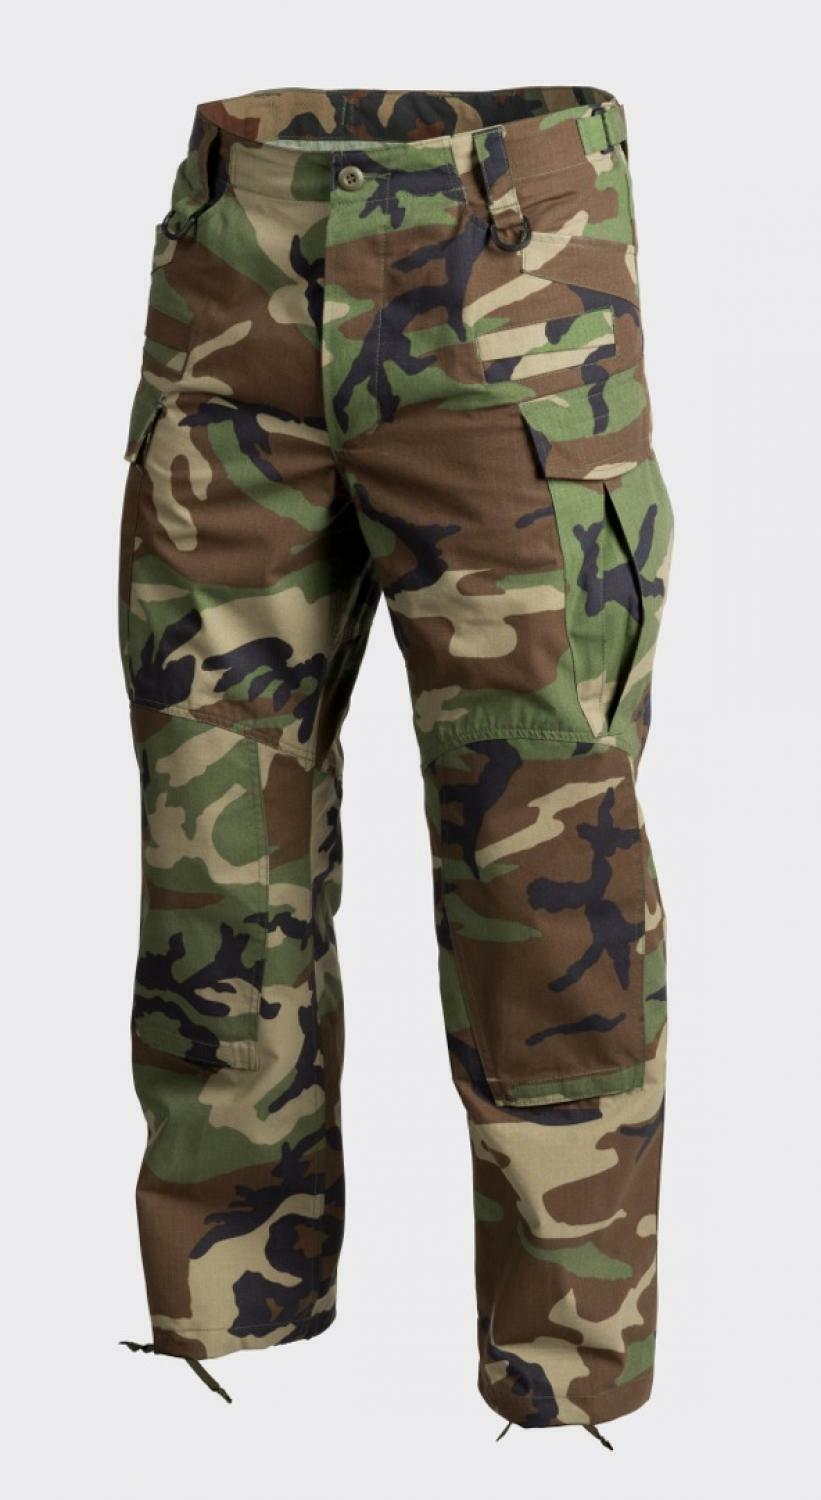 Helikon Tex Sfu next Tactical Outdoor Pants Army Woodland Camouflage Xlarge